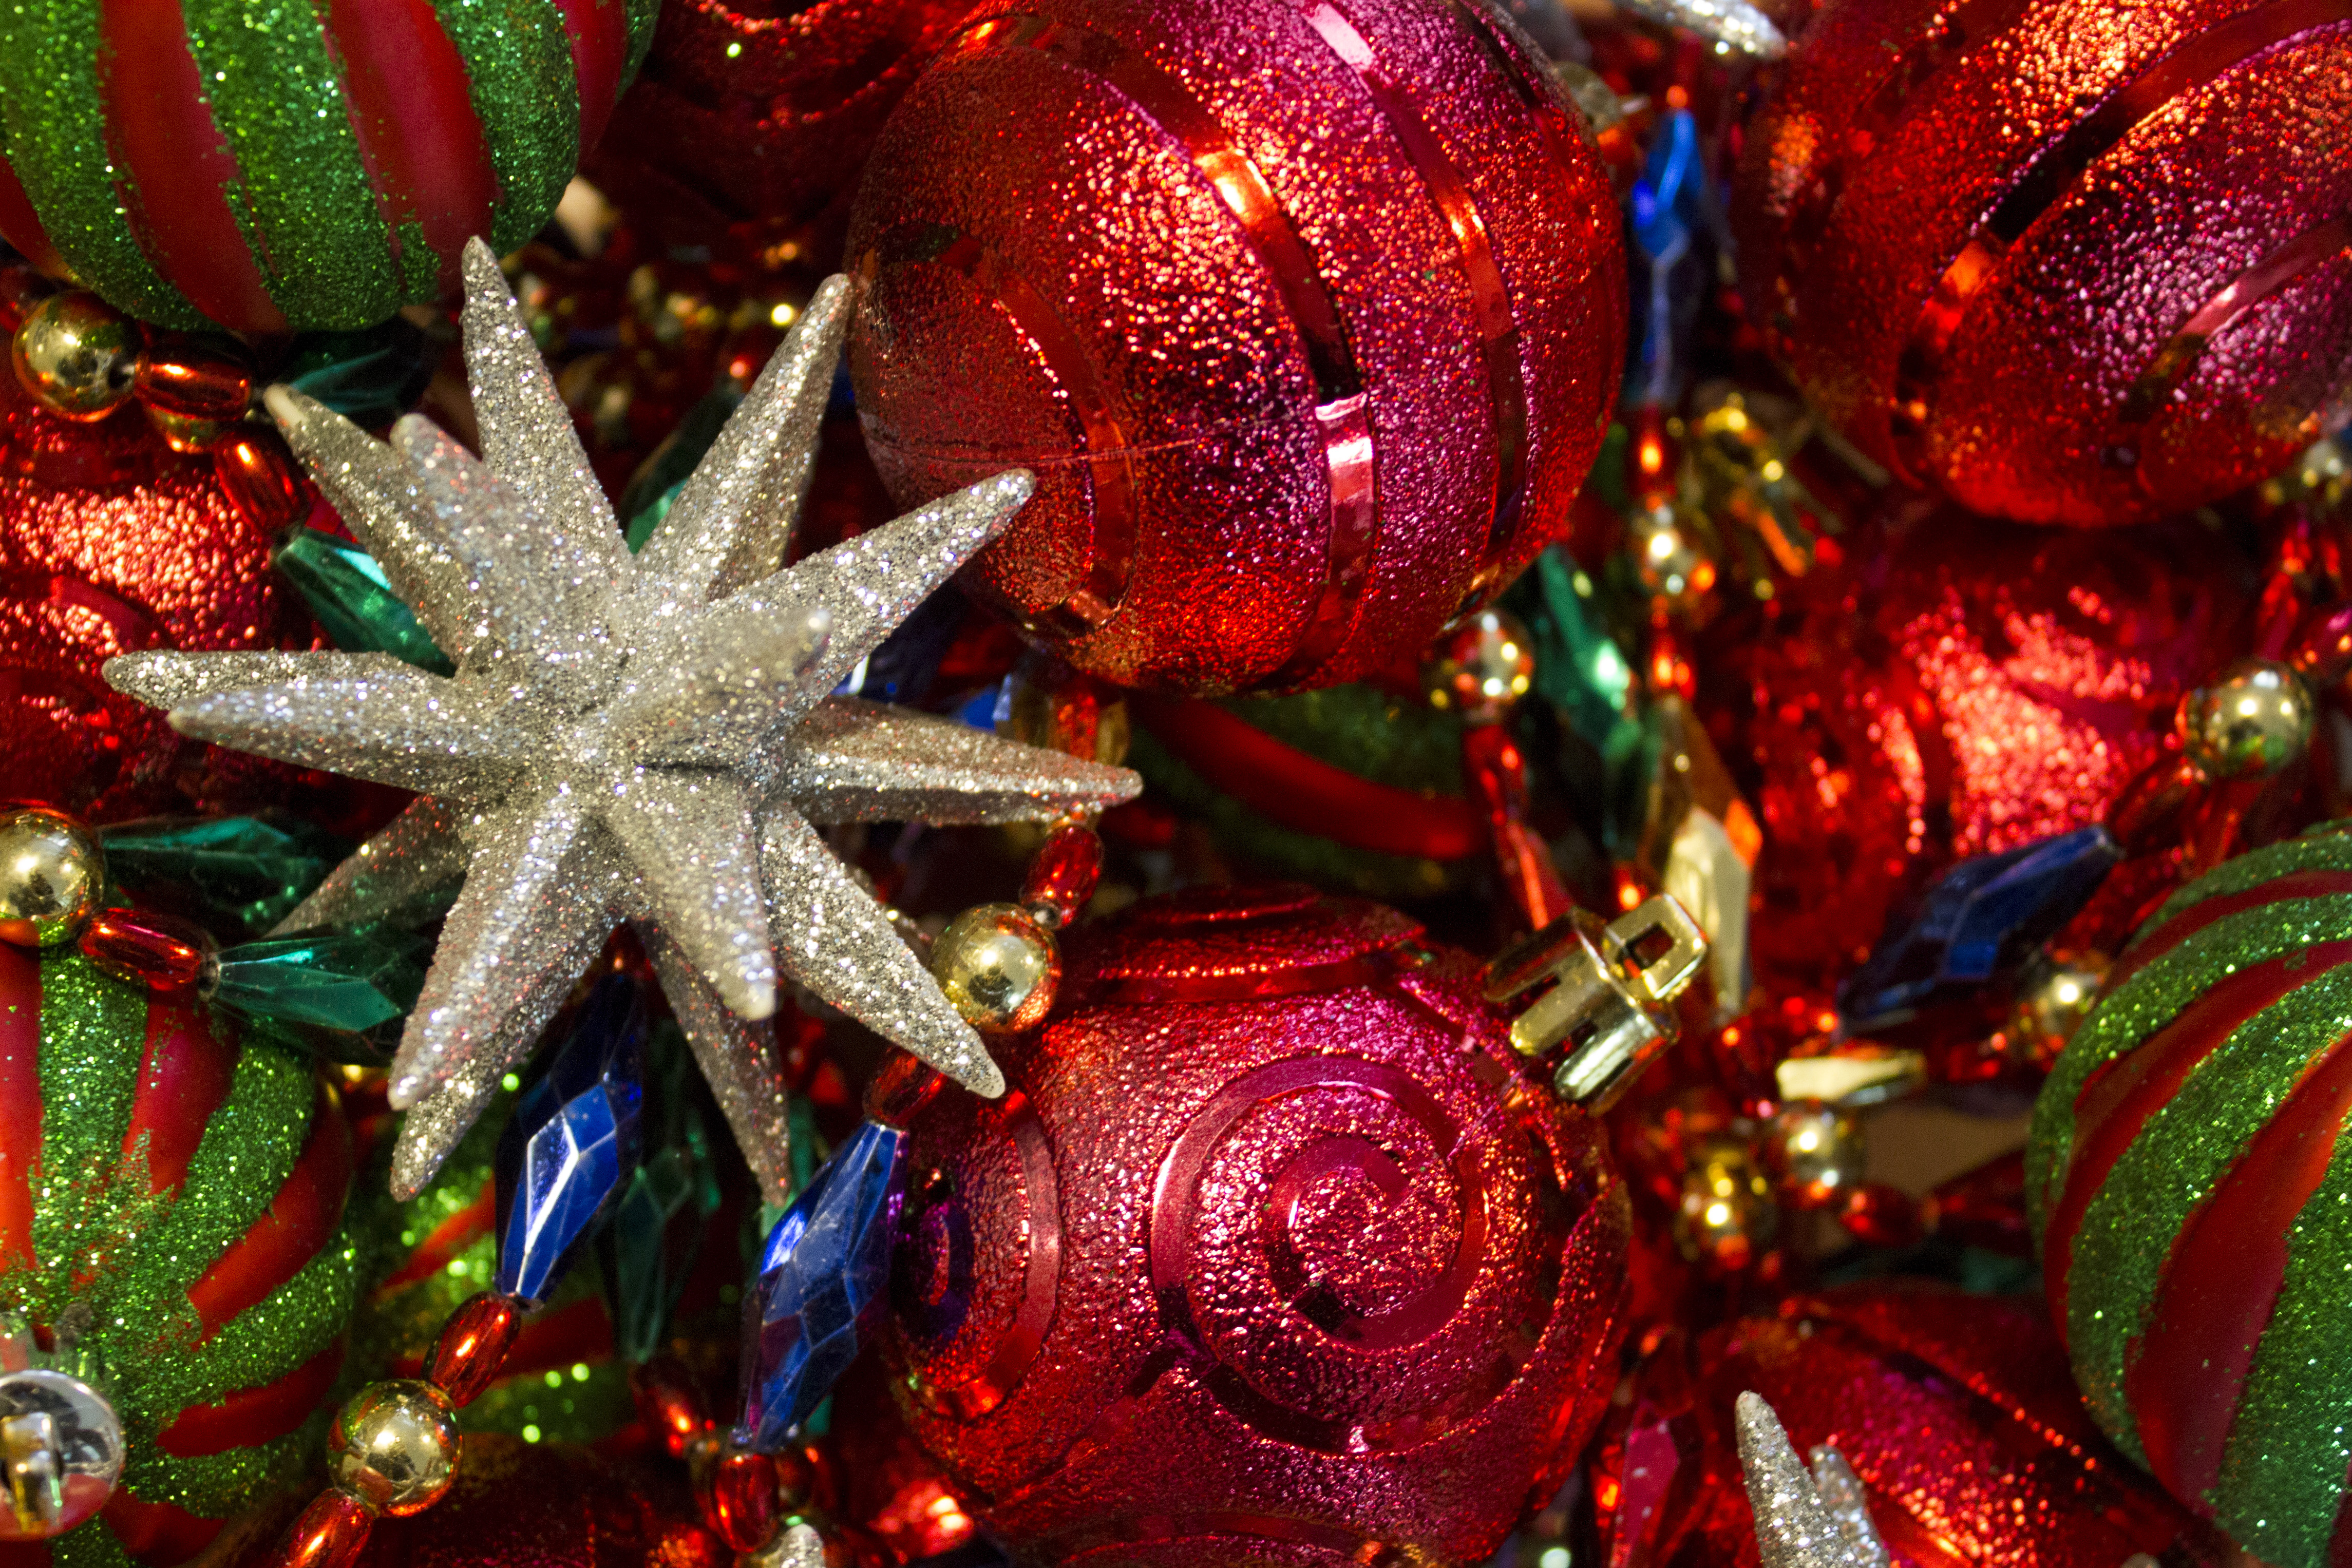 Foreign Perspective: Never Have, Never Will Celebrate Christmas